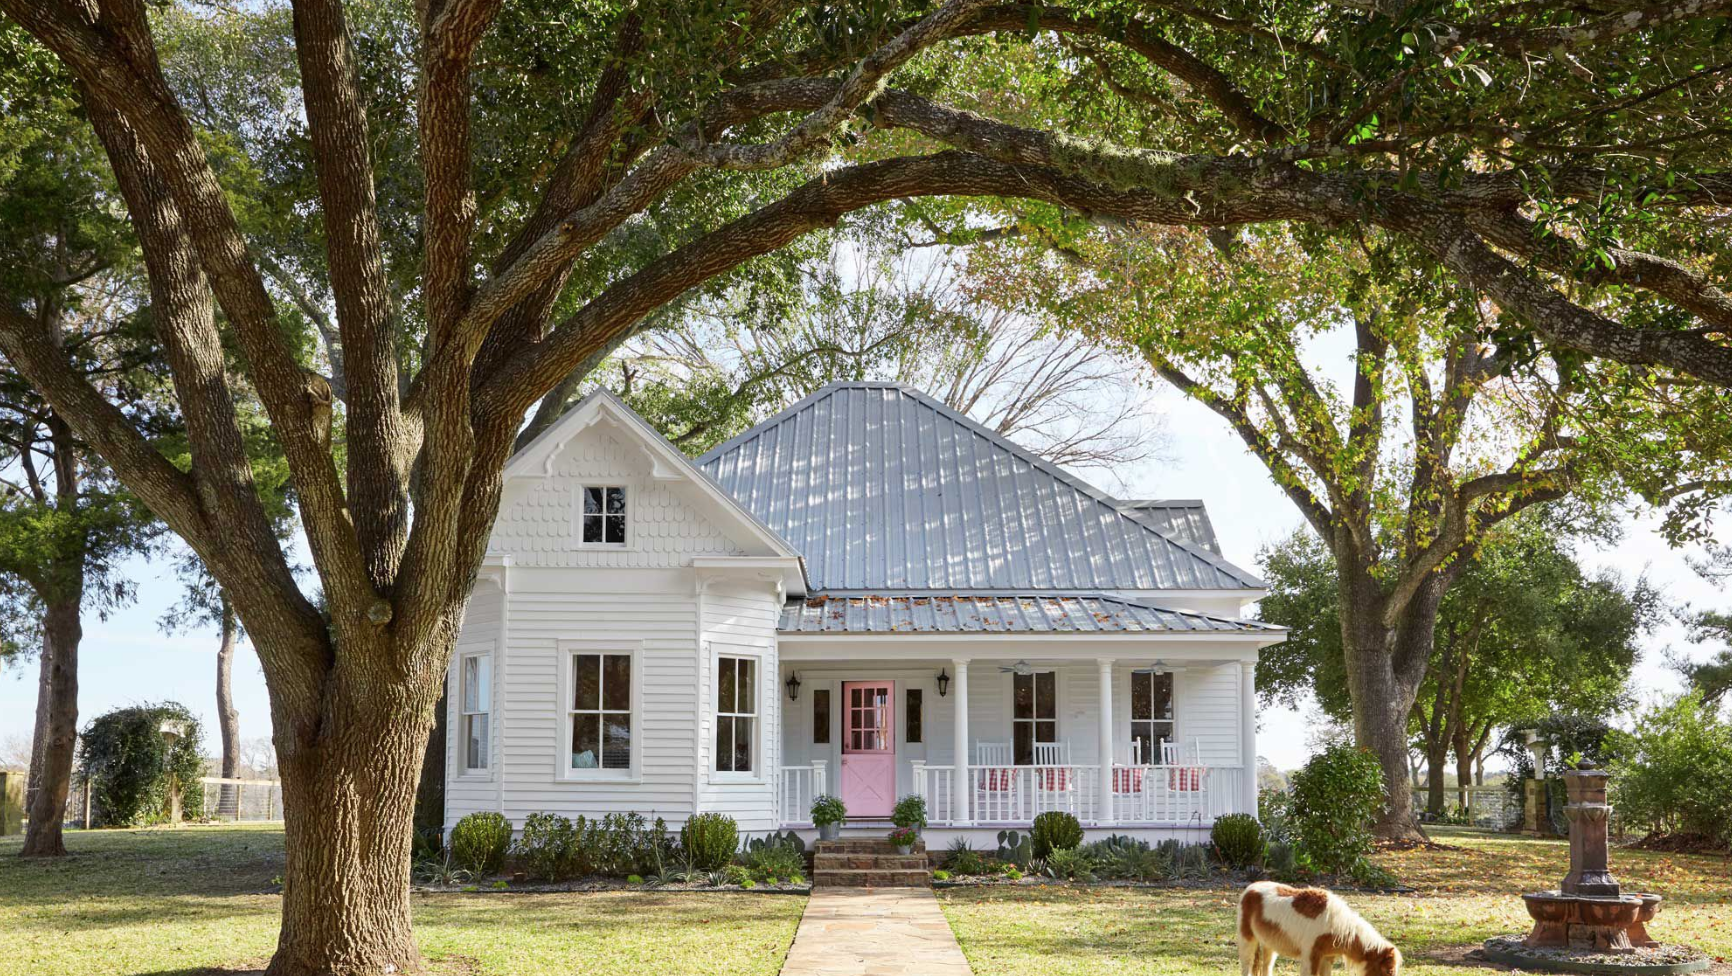 Victorian Folk Farmhouse Exterior with white siding and pink door